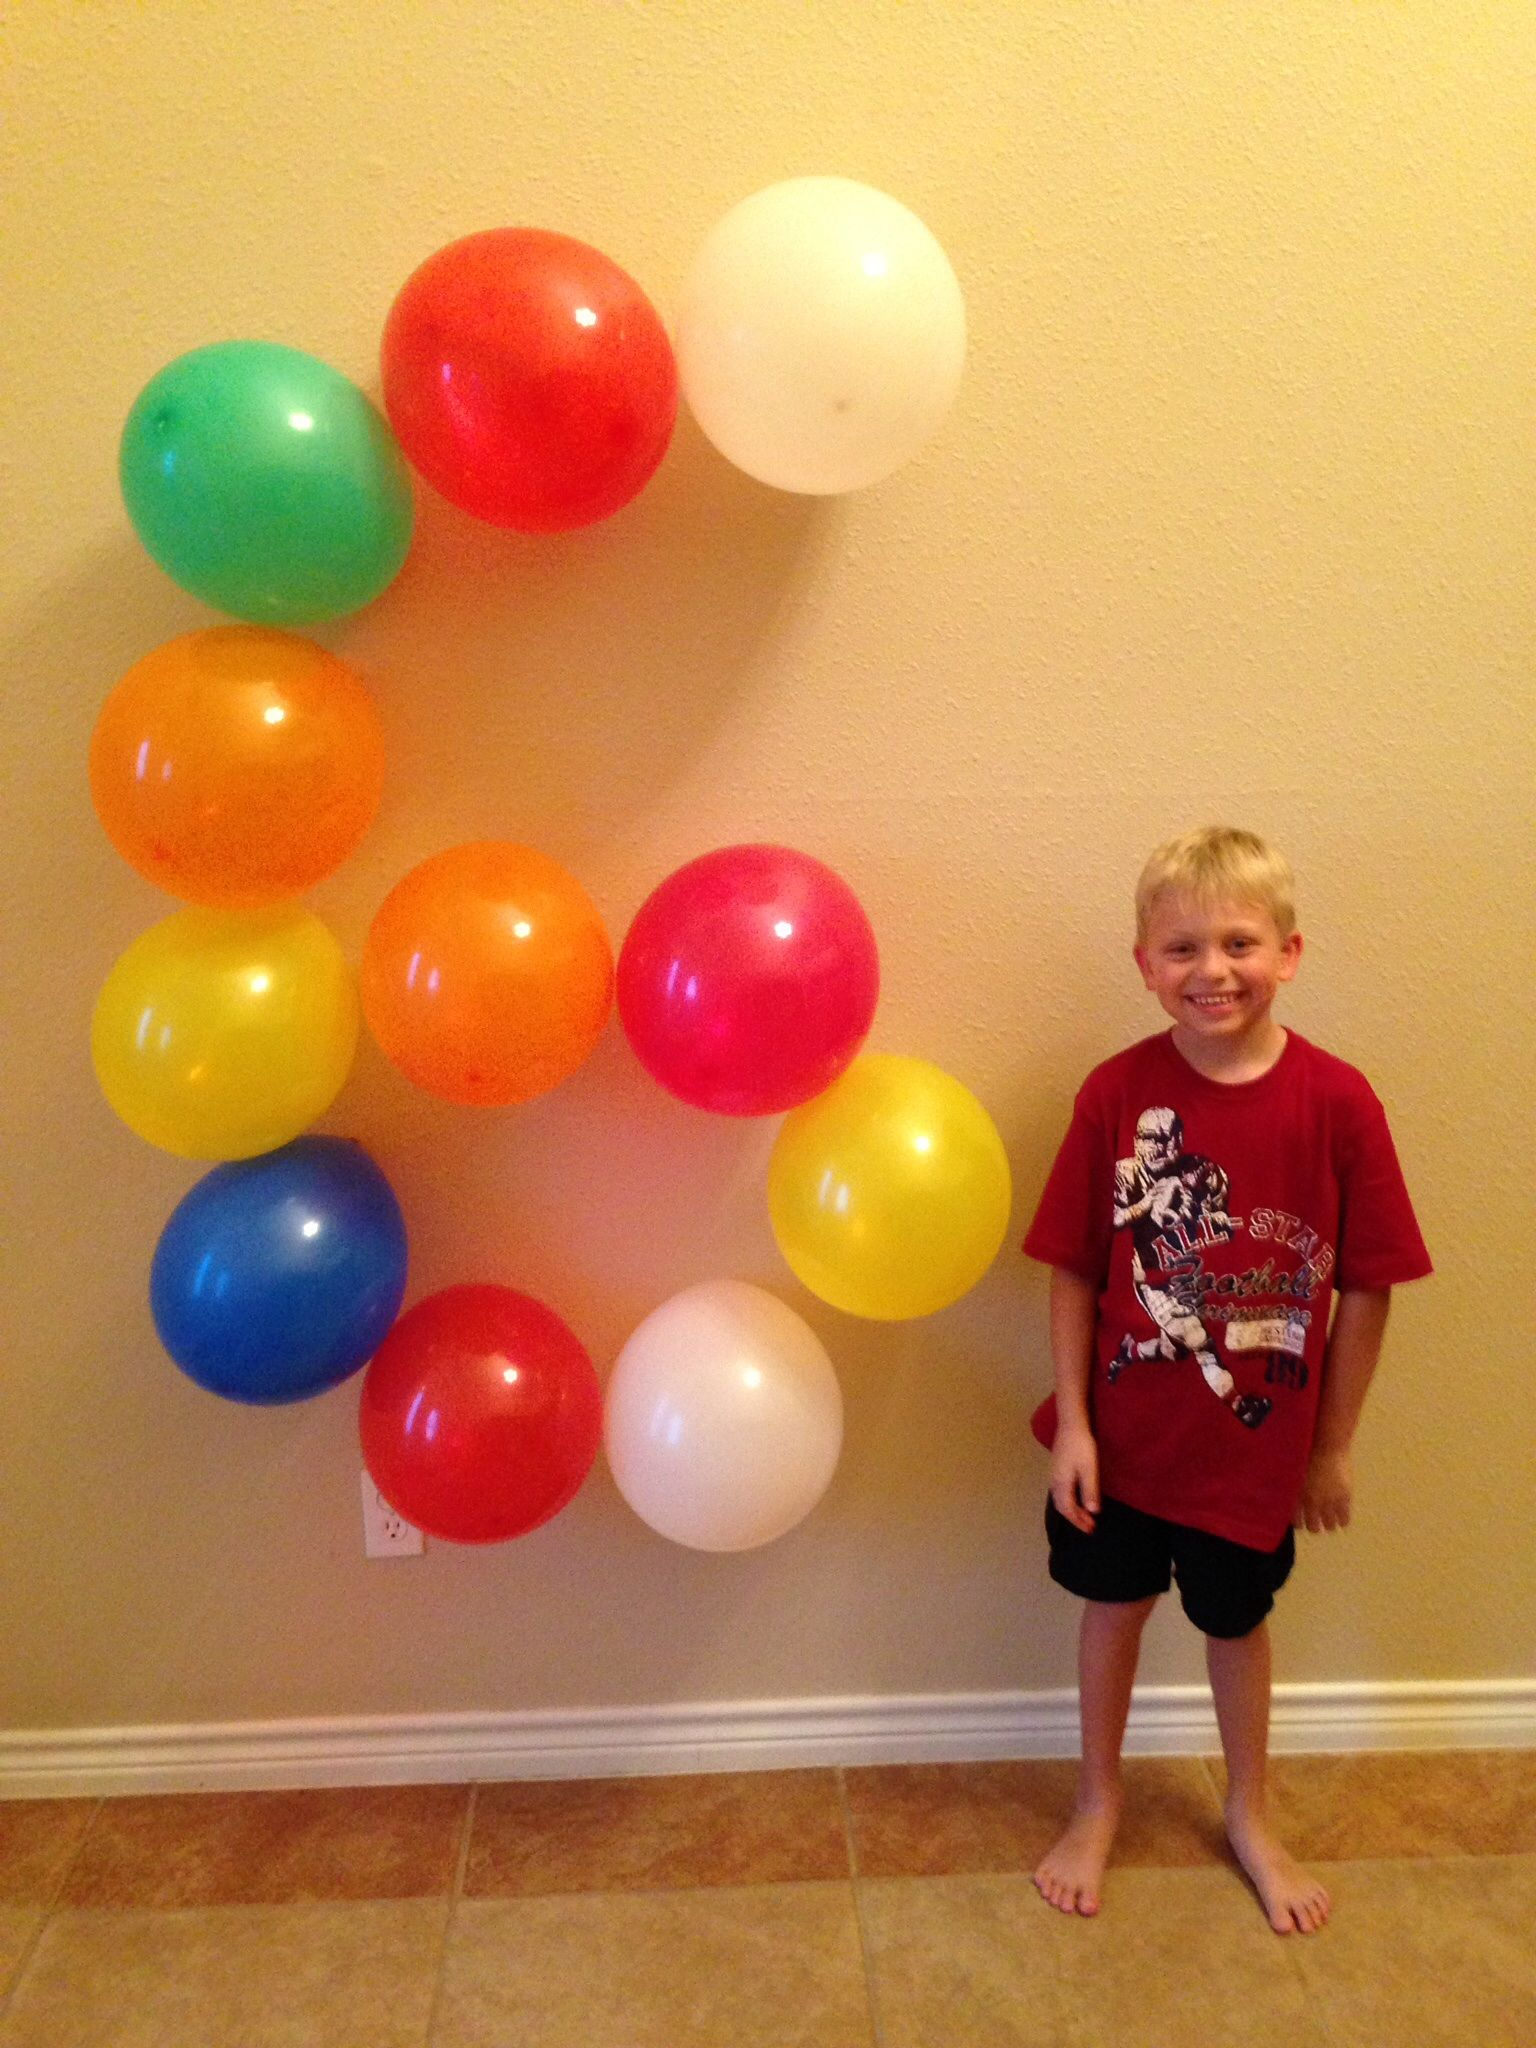 My son turned 6 years old Take a picture of ballons shaped as the